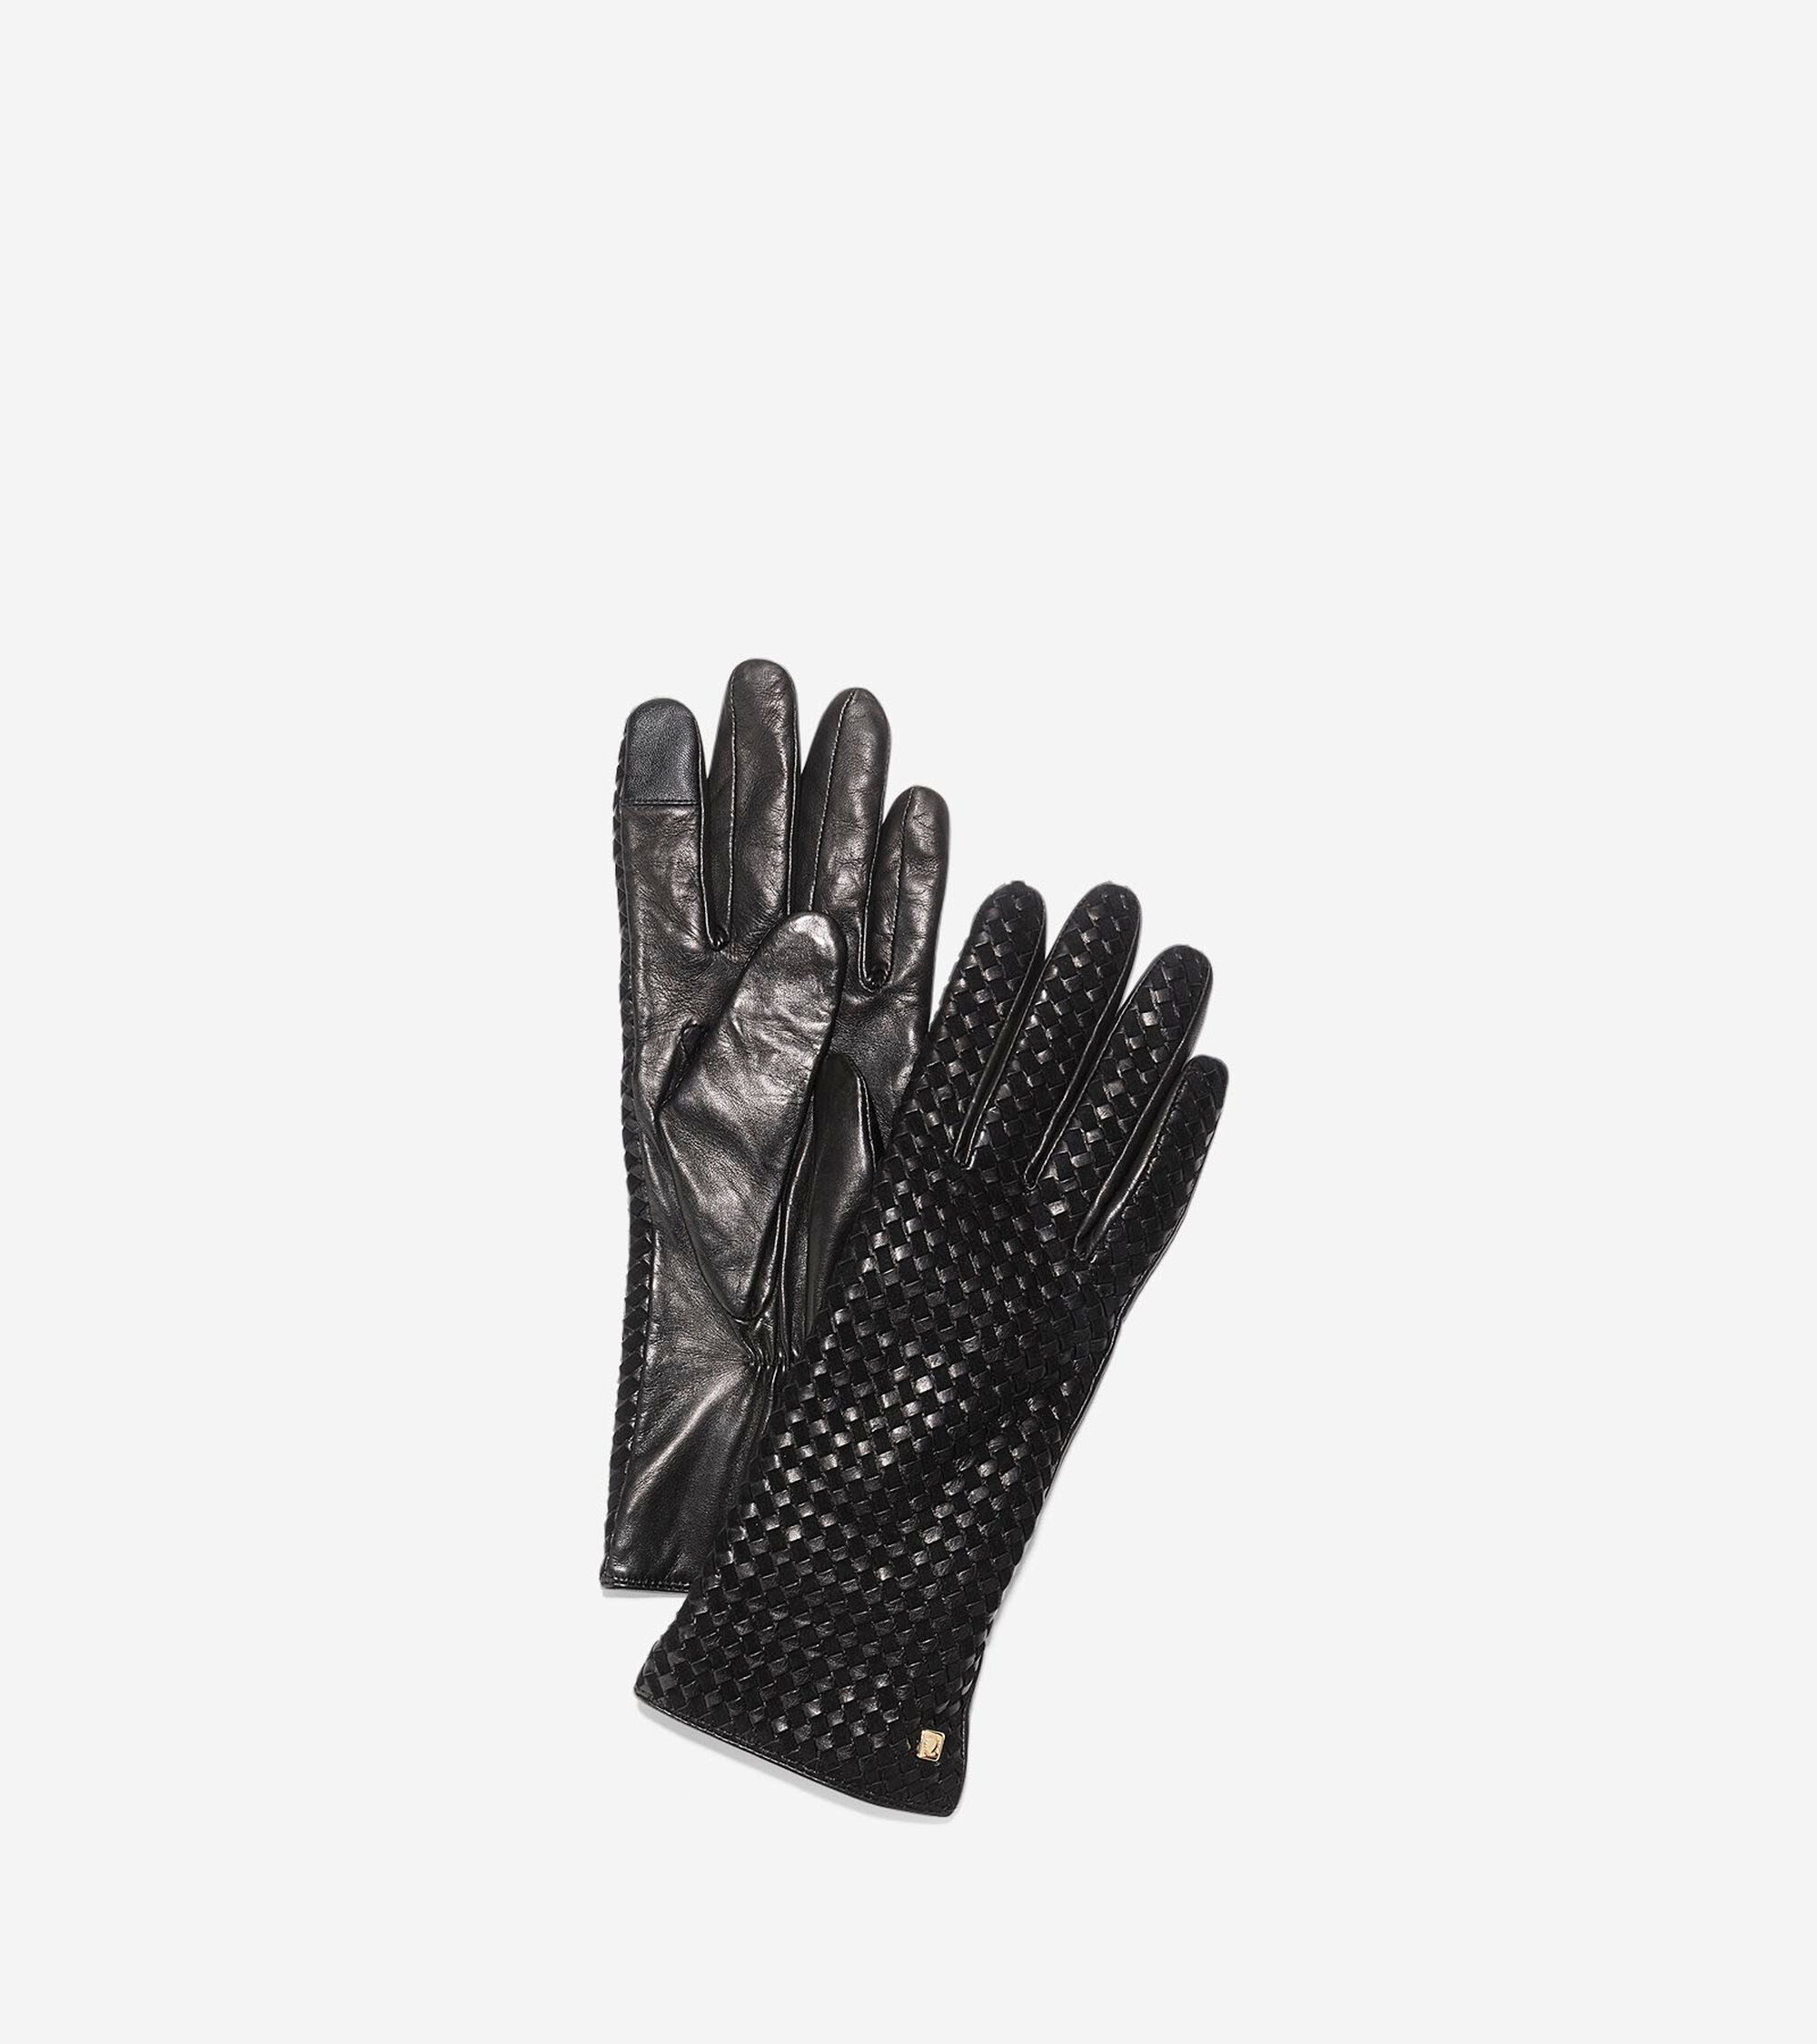 Cole haan black leather gloves - Braided Back Gloves